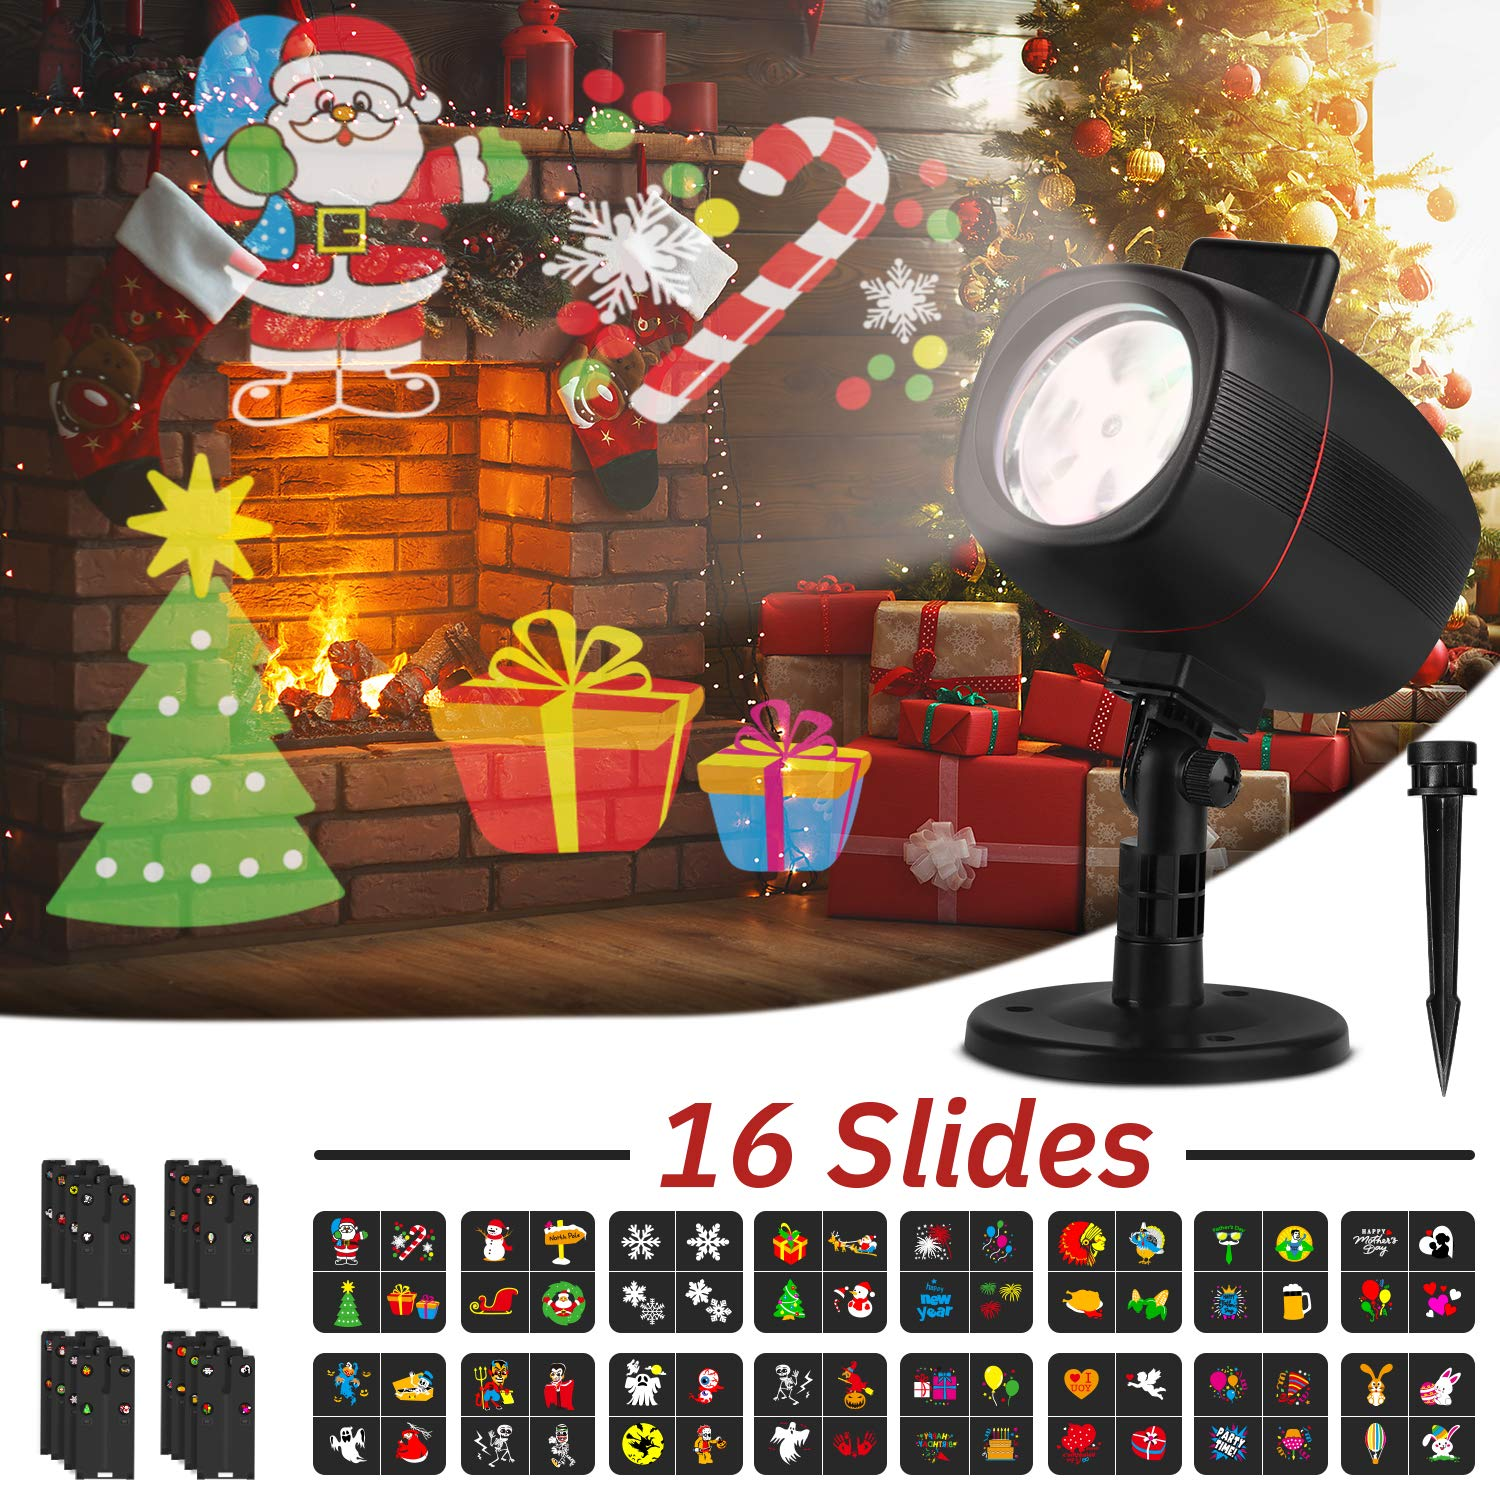 OUSFOT Christmas Projector Lights Outdoor Indoor 16 Slides 2 in 1 Adjustable LED Light Projector Christmas Decorations for Halloween Xmas